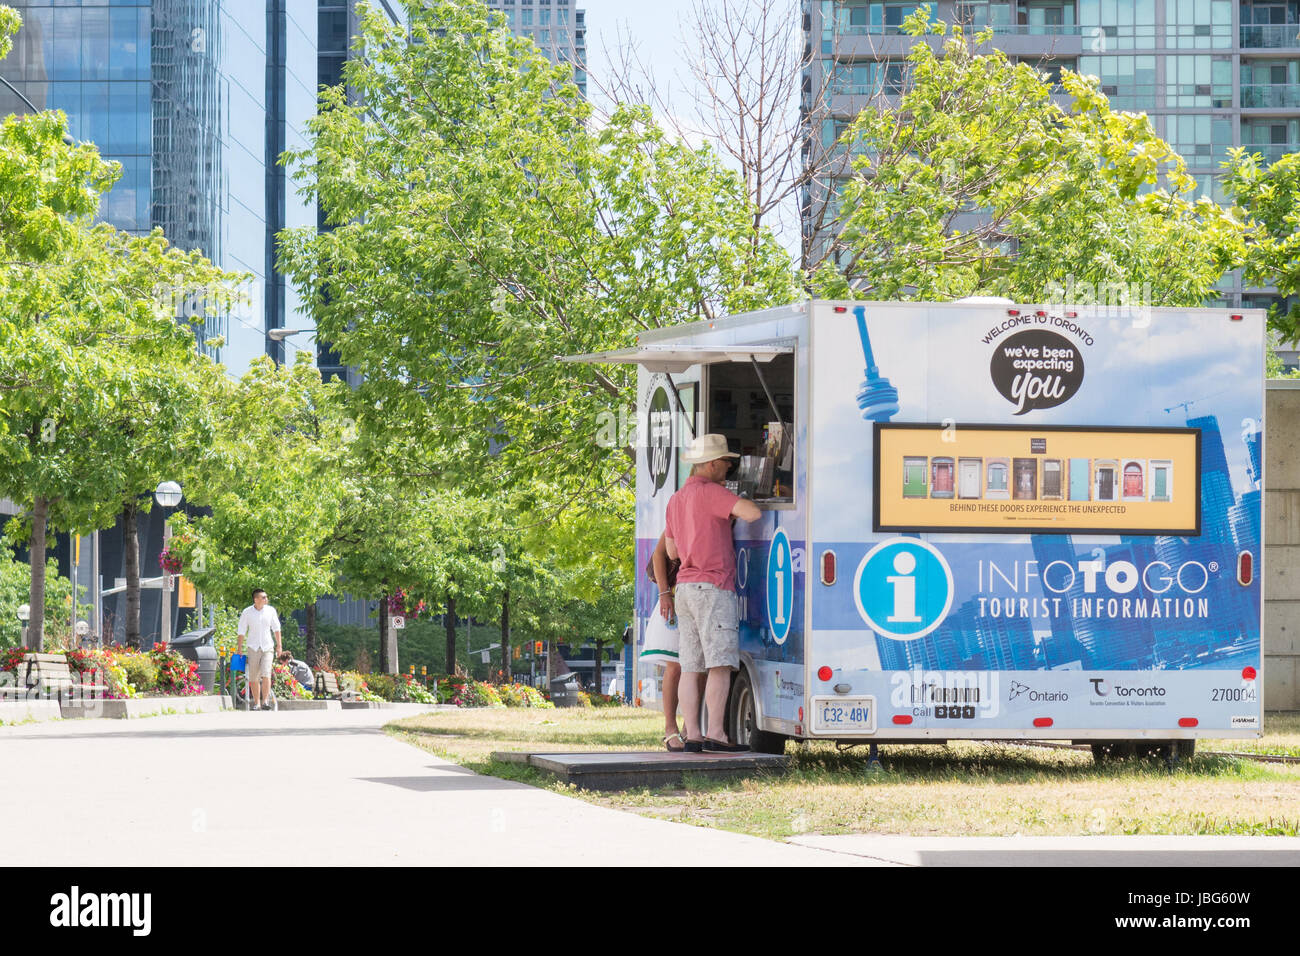 Mobile tourist information center centre, INFOTOGO, Roundhouse Park, Toronto, Ontario, Canada - Stock Image